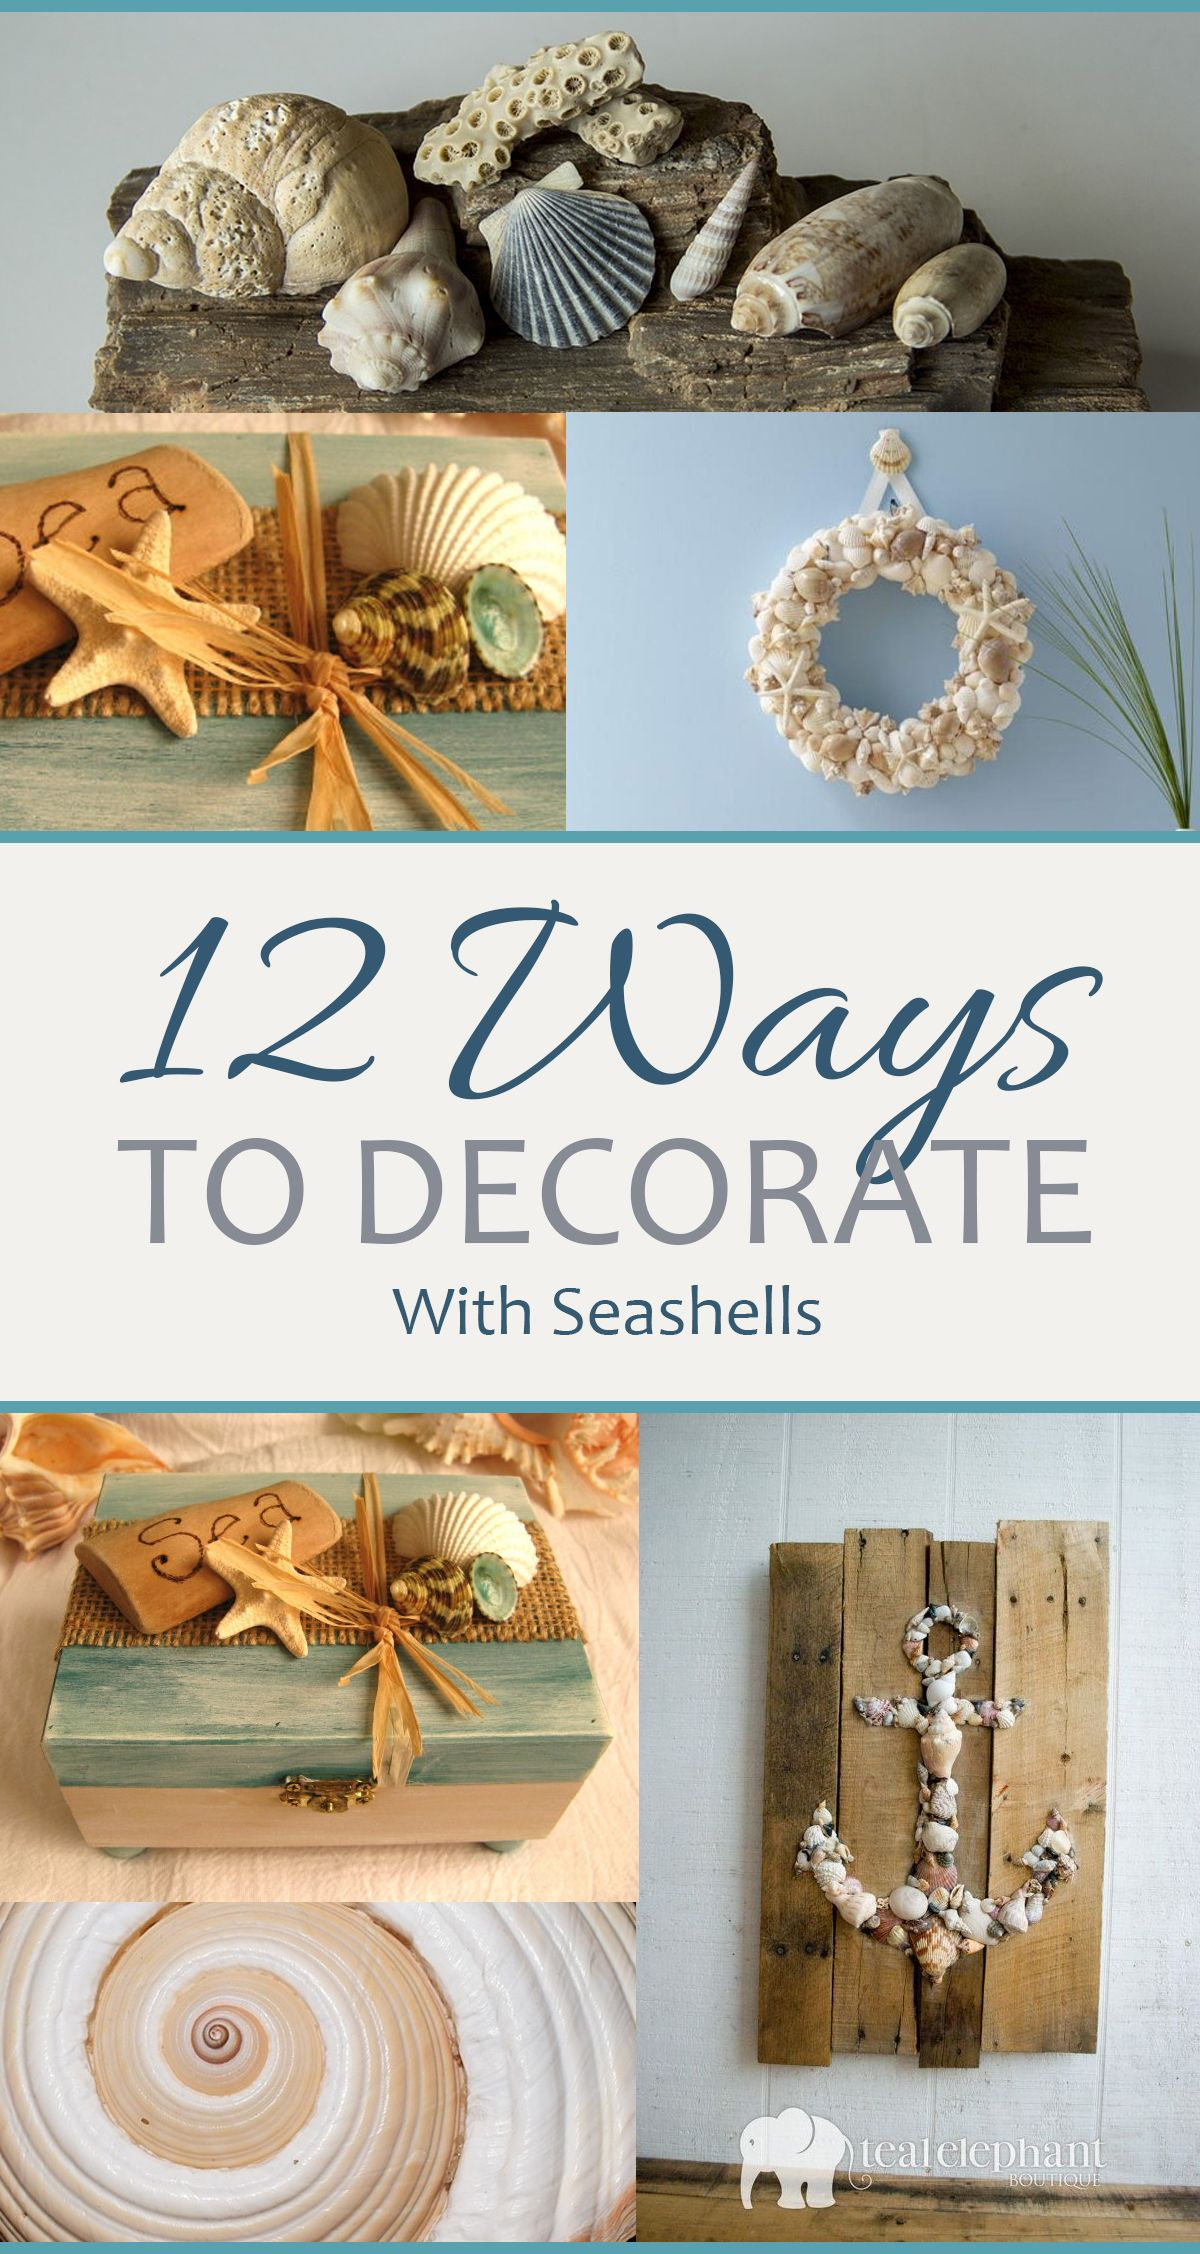 12 Ways To Decorate With Seashells With Images Sea Shell Decor